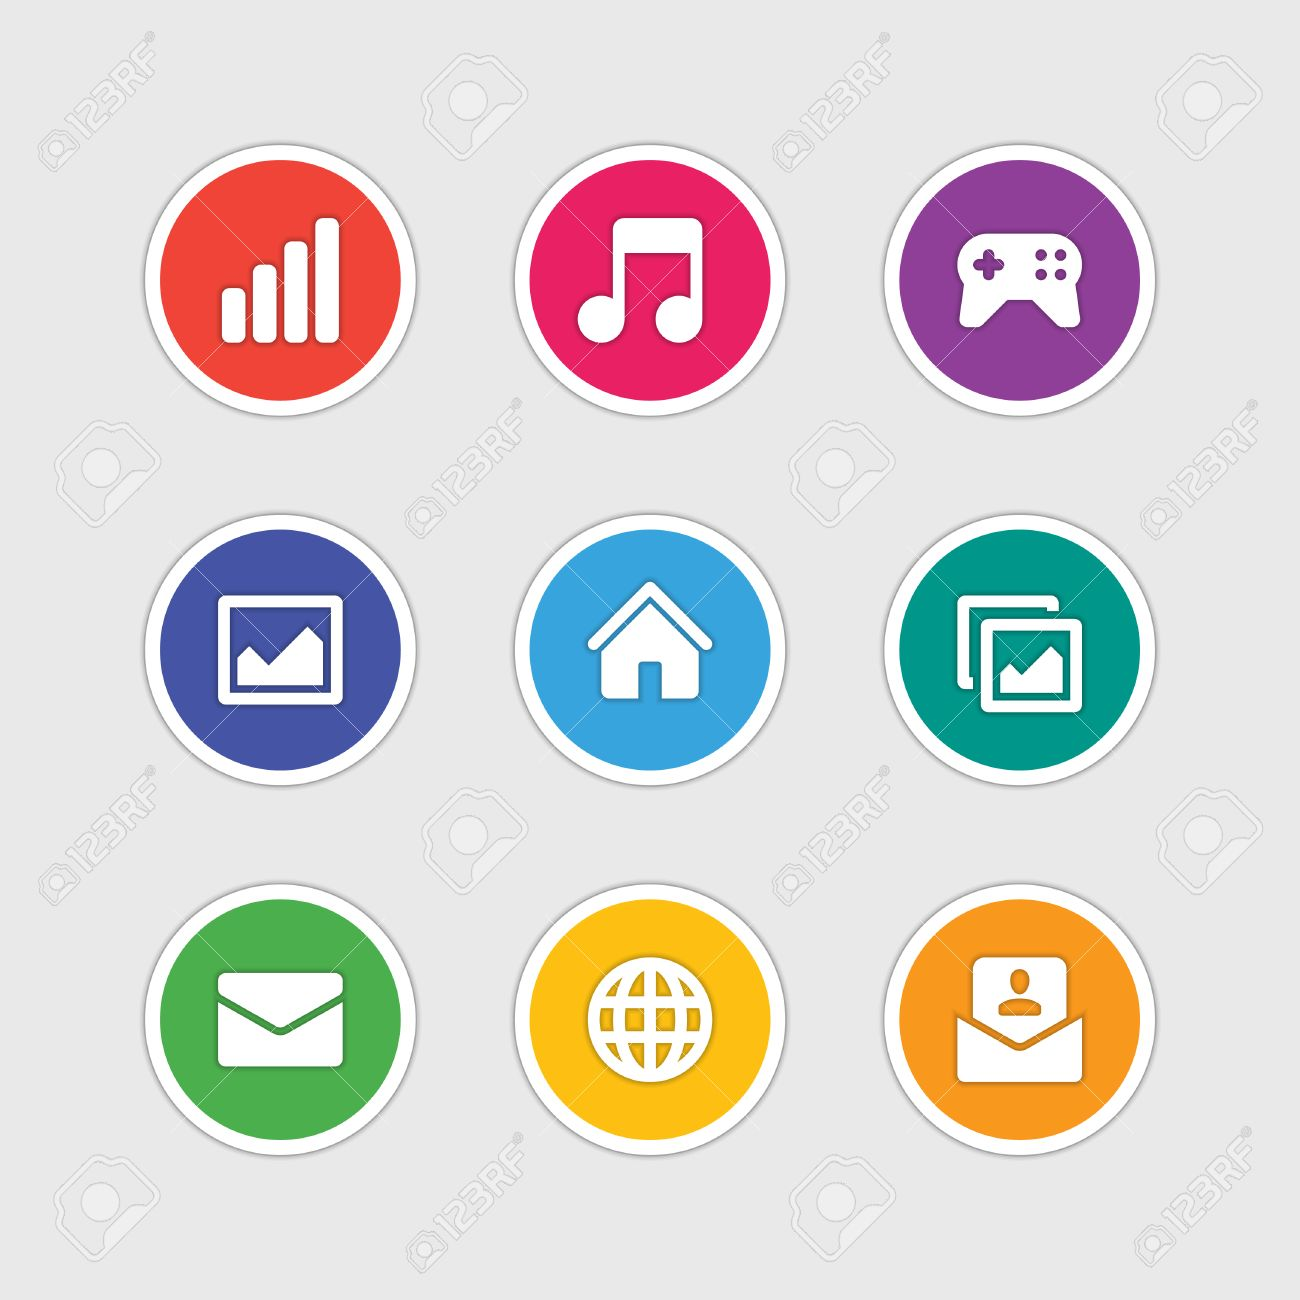 Material design style icons vector sign and symbols Anten signal,